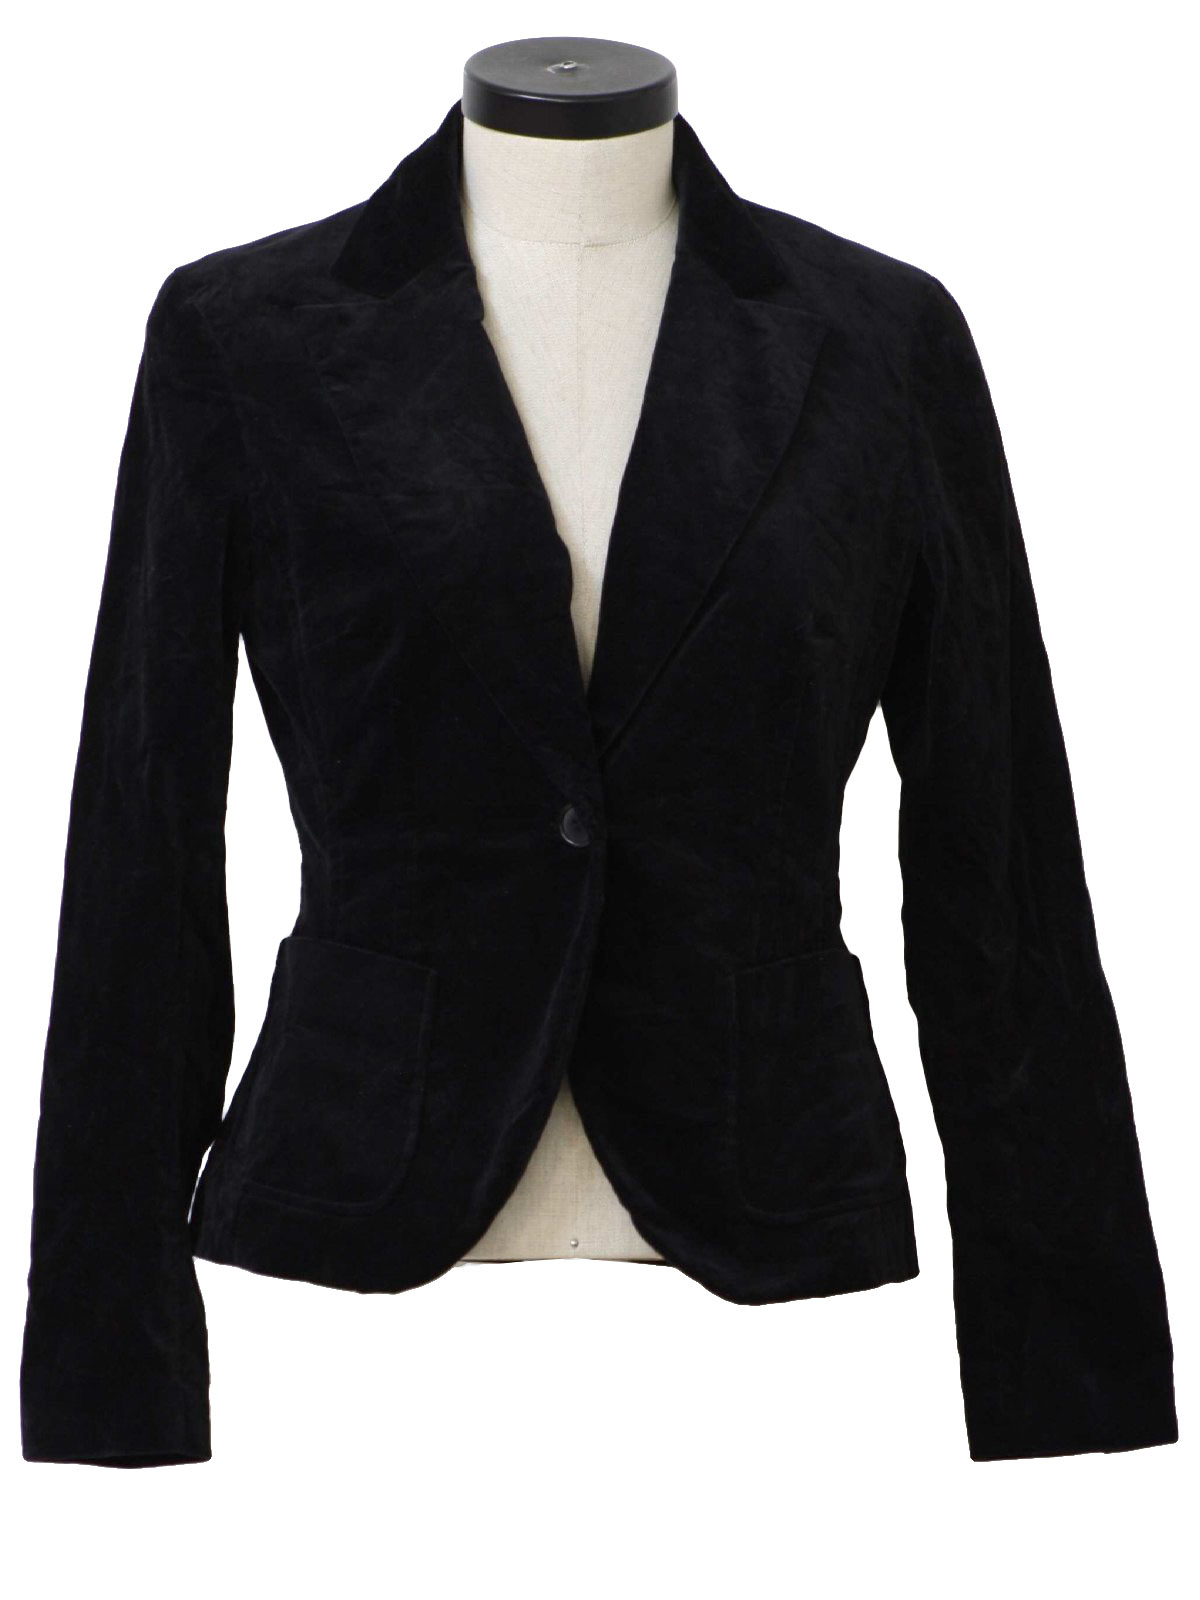 Find great deals on eBay for black blazer. Shop with confidence.